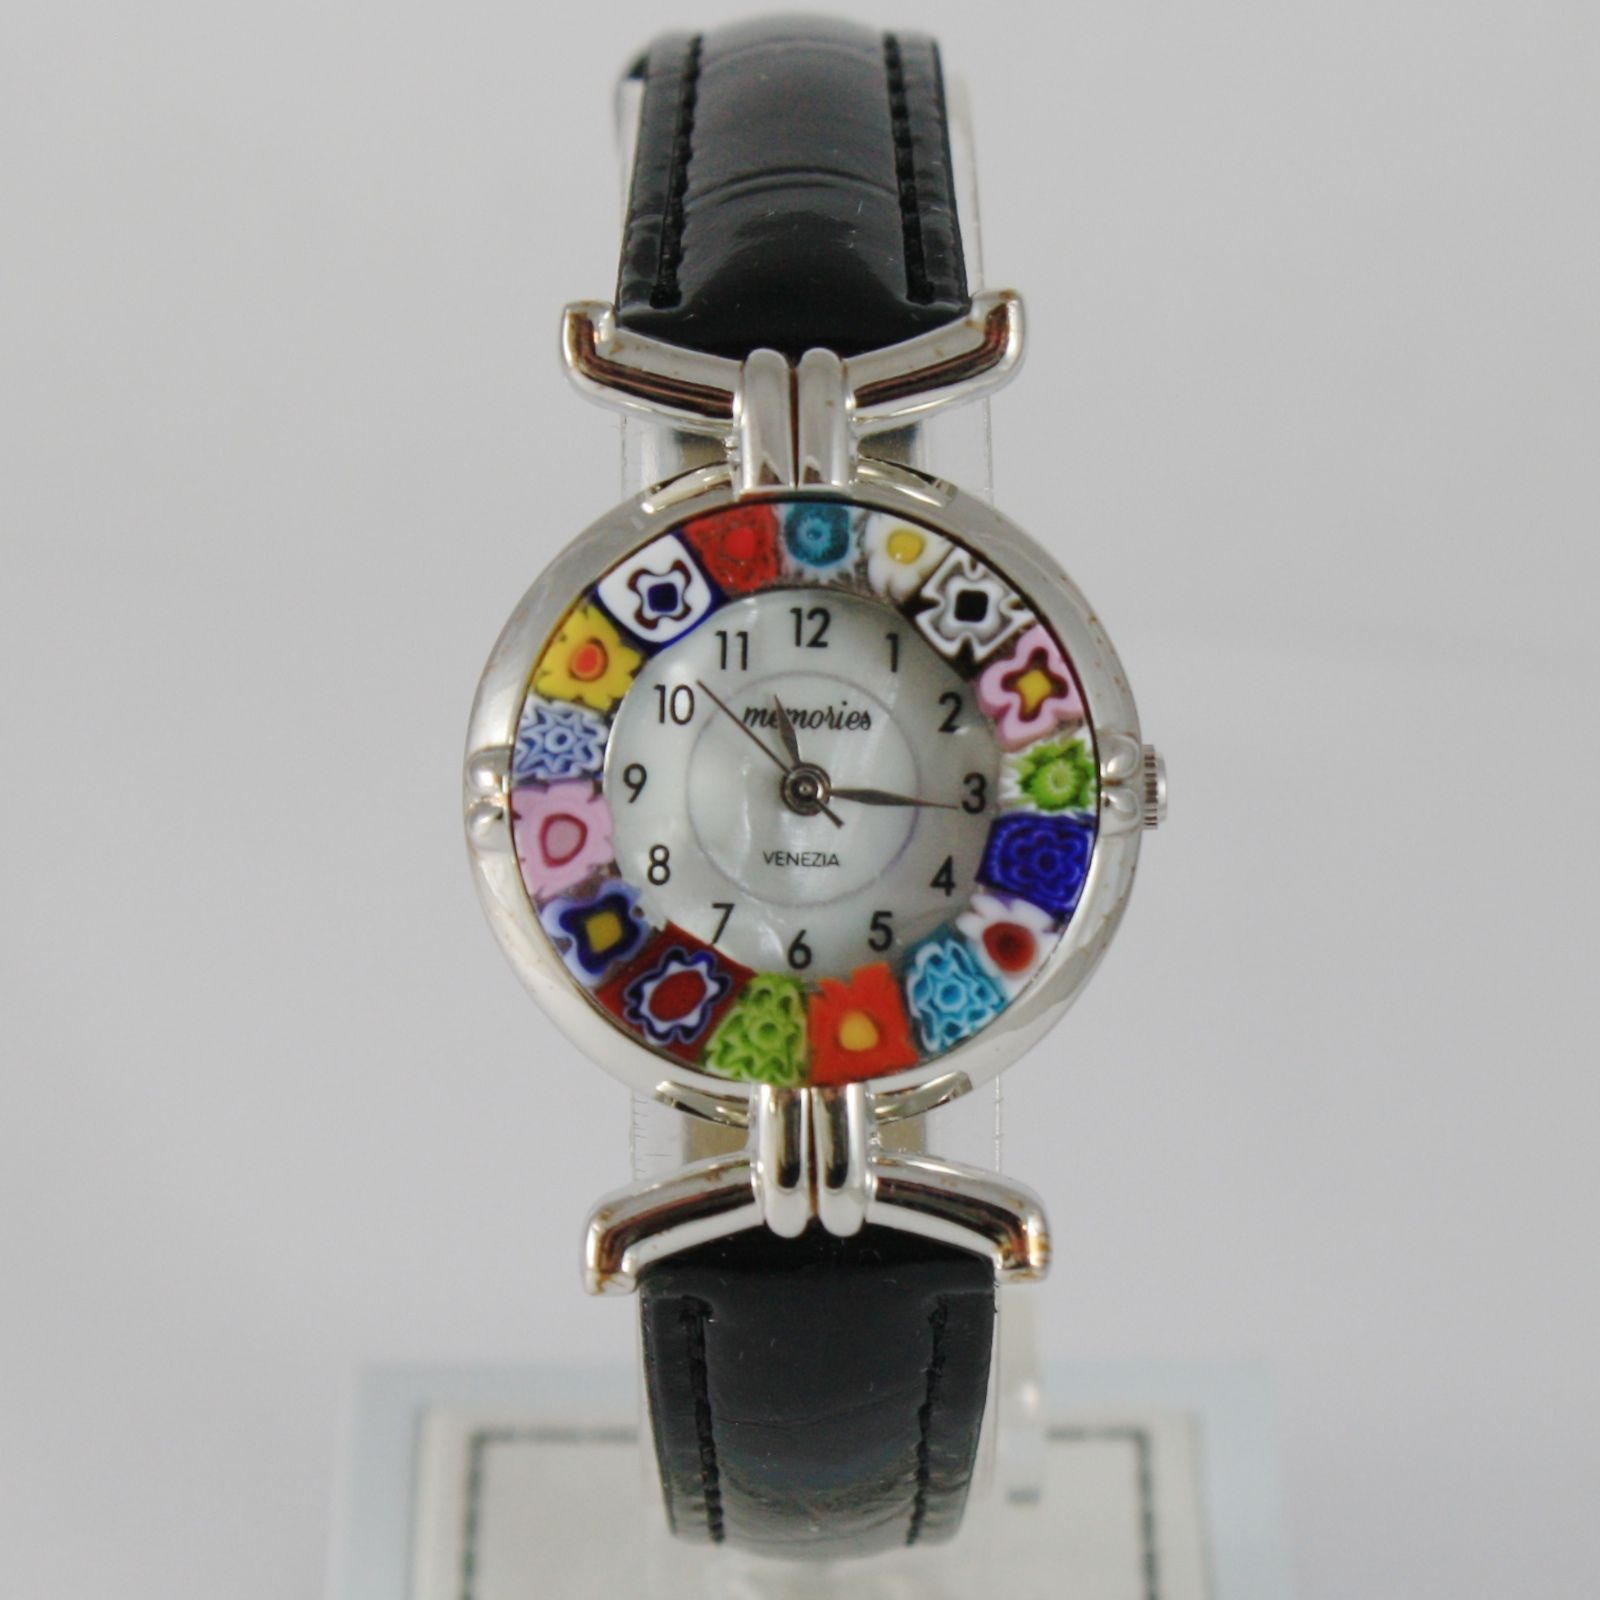 ANTICA MURRINA VENEZIA QUARTZ WATCH 27 MM, BLACK, MURANO FLOWER GLASS